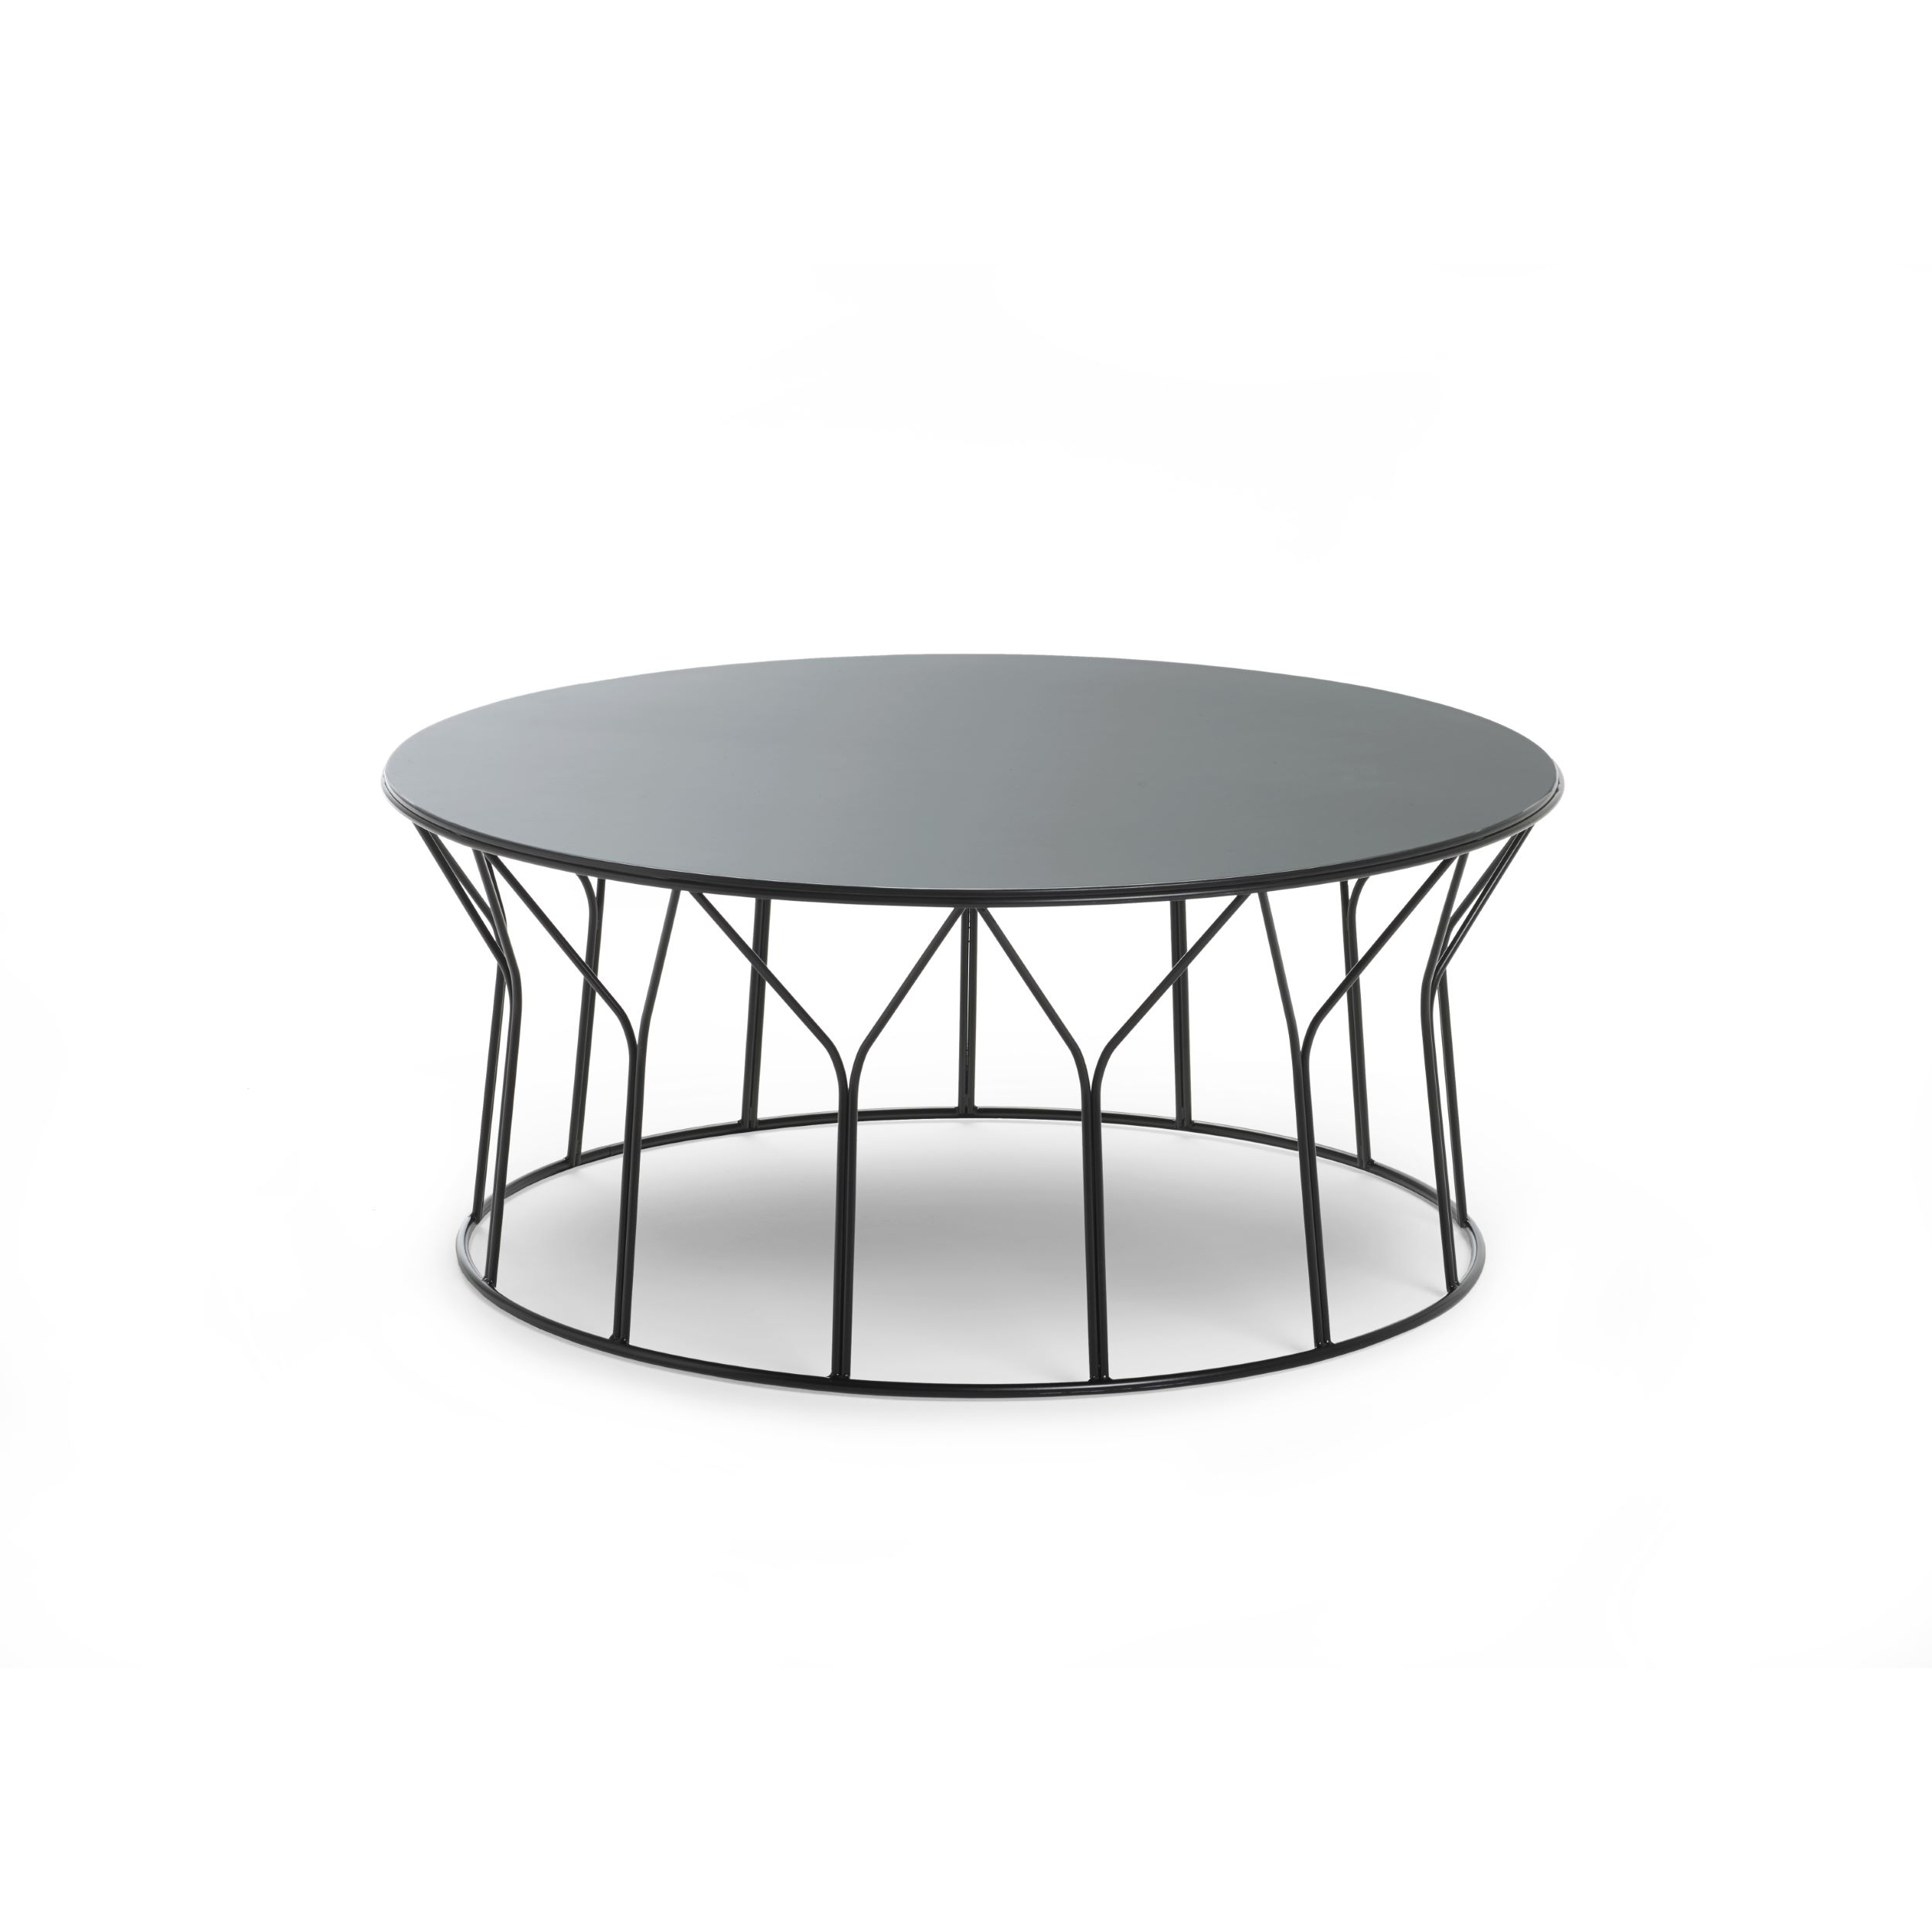 Circus Round Coffee Table Furniture Design By